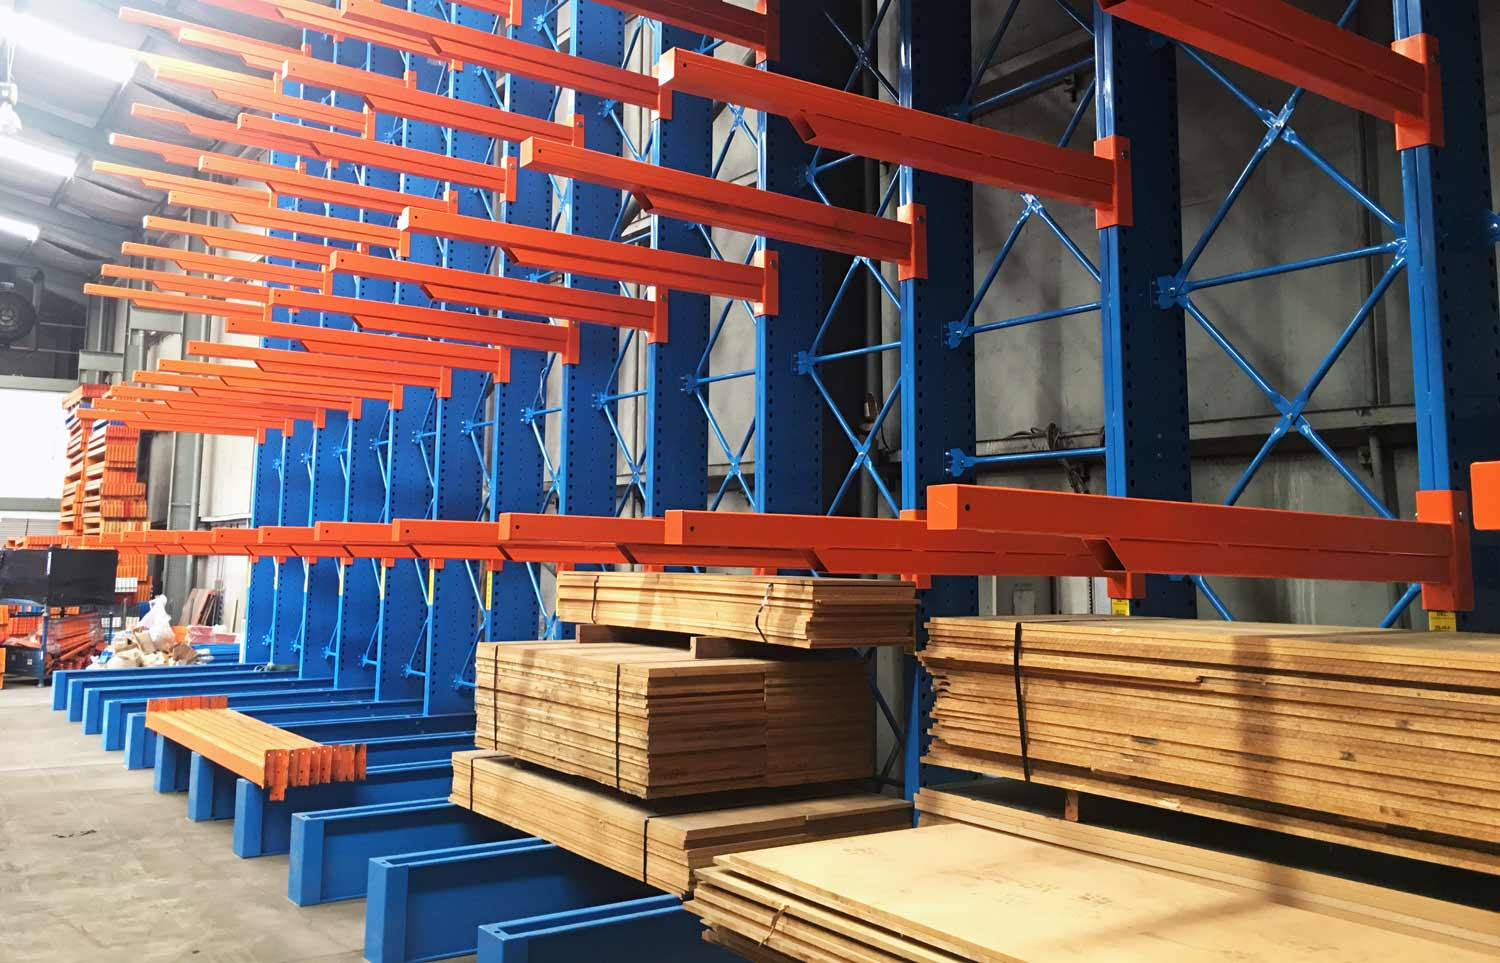 What Can Be Stored in Cantilever Racking?